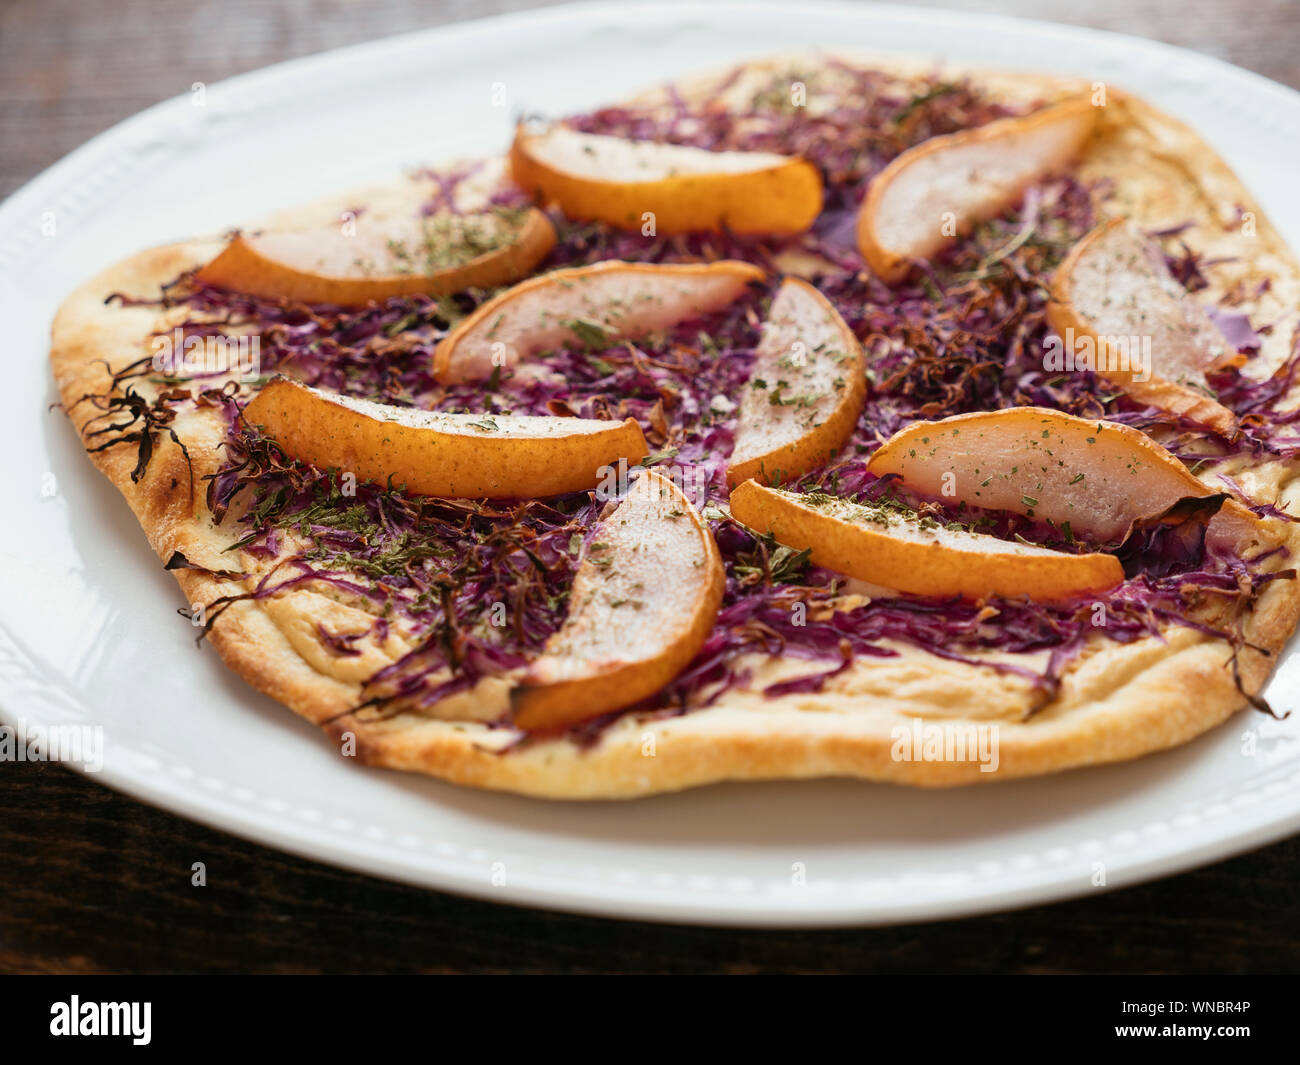 Traditional German flammkuchen (flatbread) with red cabbage and pears. Stock Photo